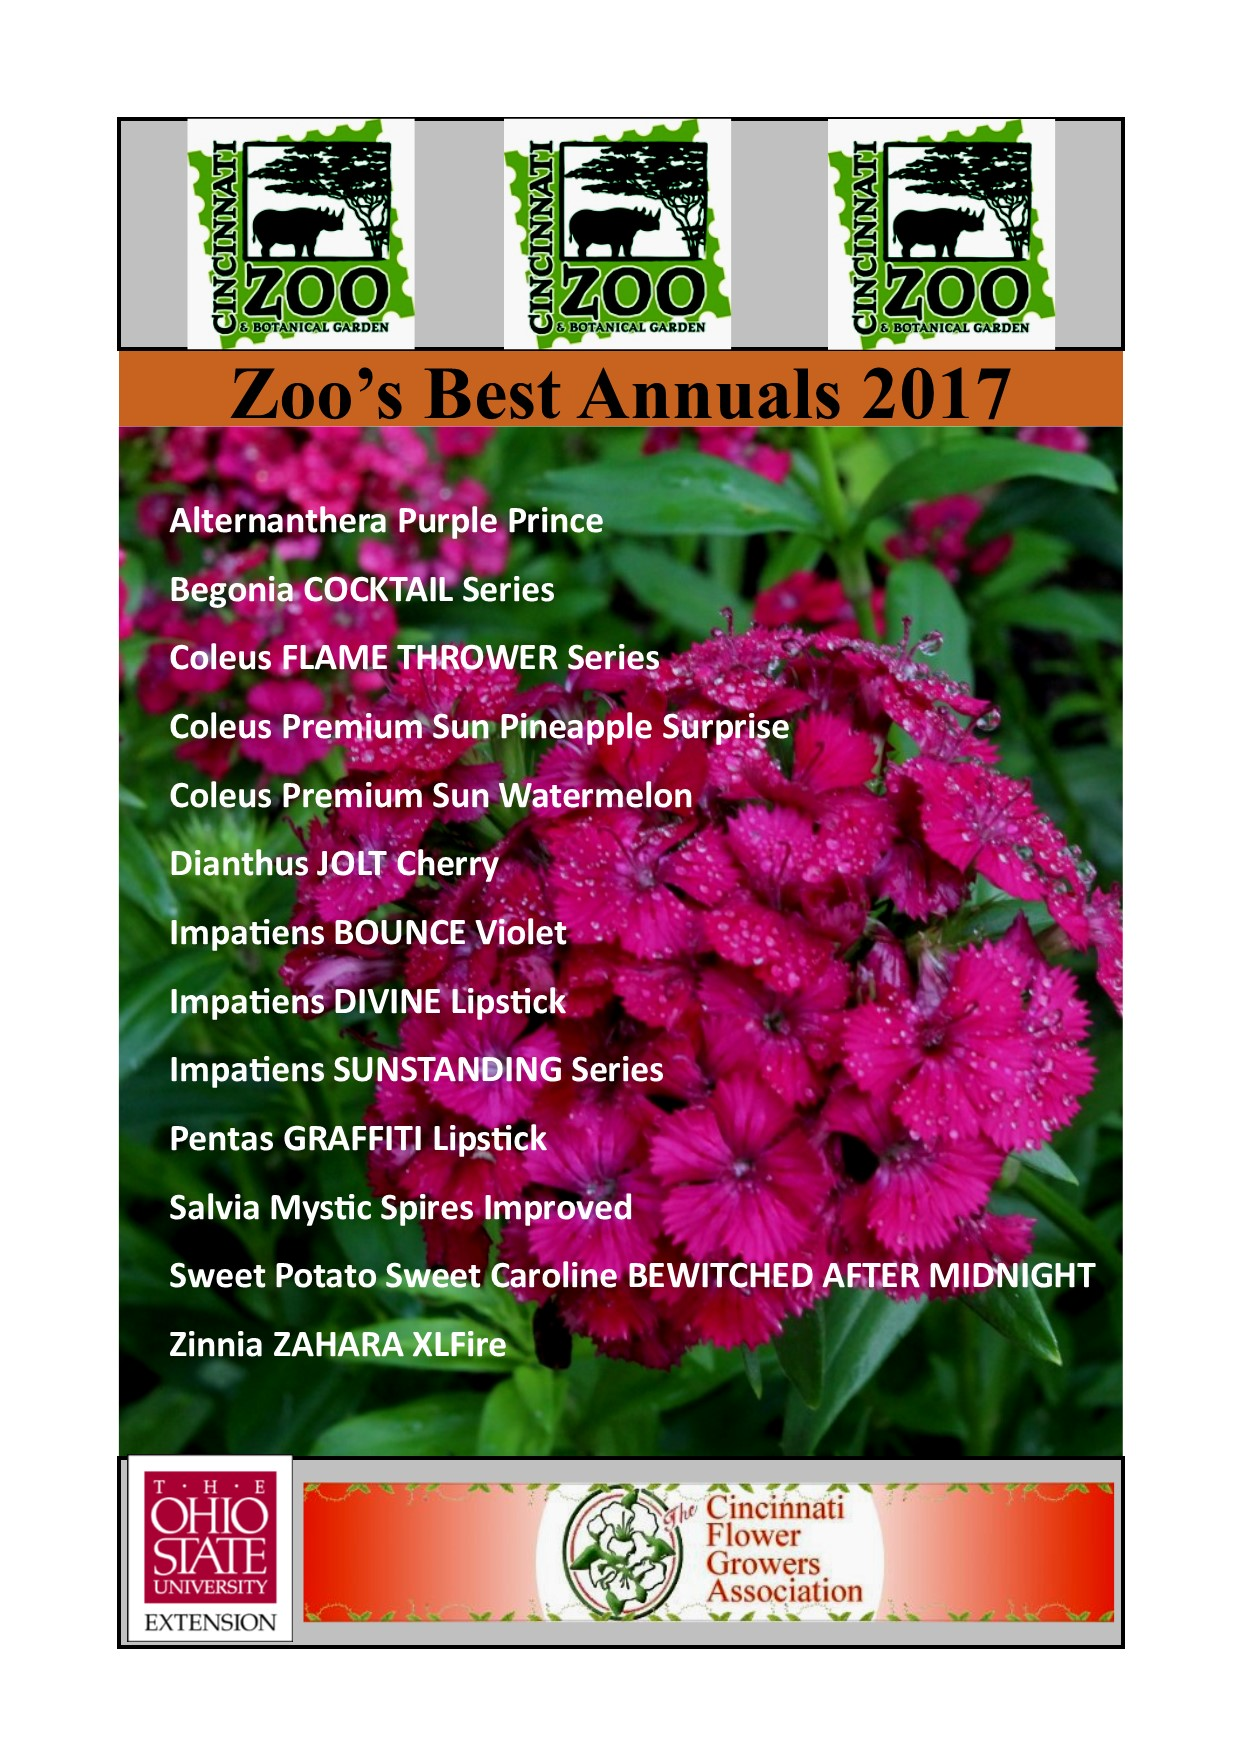 Zoo garden experts reveal 2017 picks for best annuals cincinnati we also put together a yearly list of the zoos best annuals izmirmasajfo Choice Image